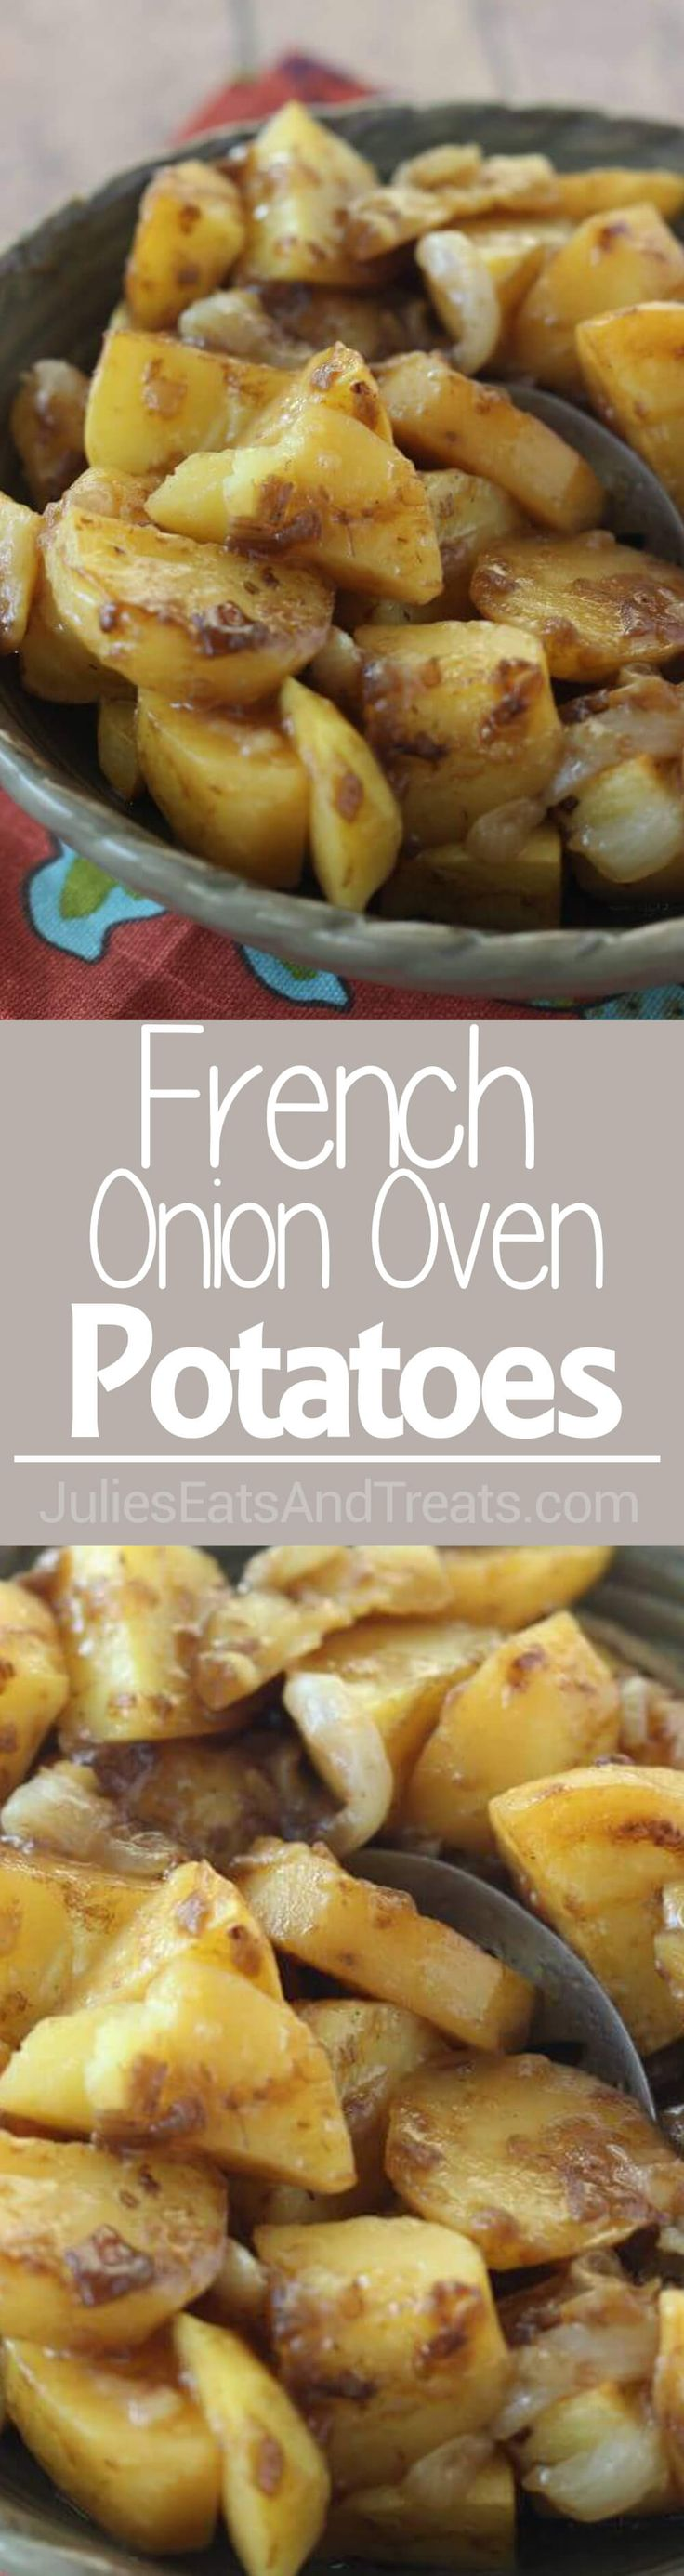 French Onion Oven Potatoes Recipe - A super easy potato side dish roasted in the oven and packed with flavor!